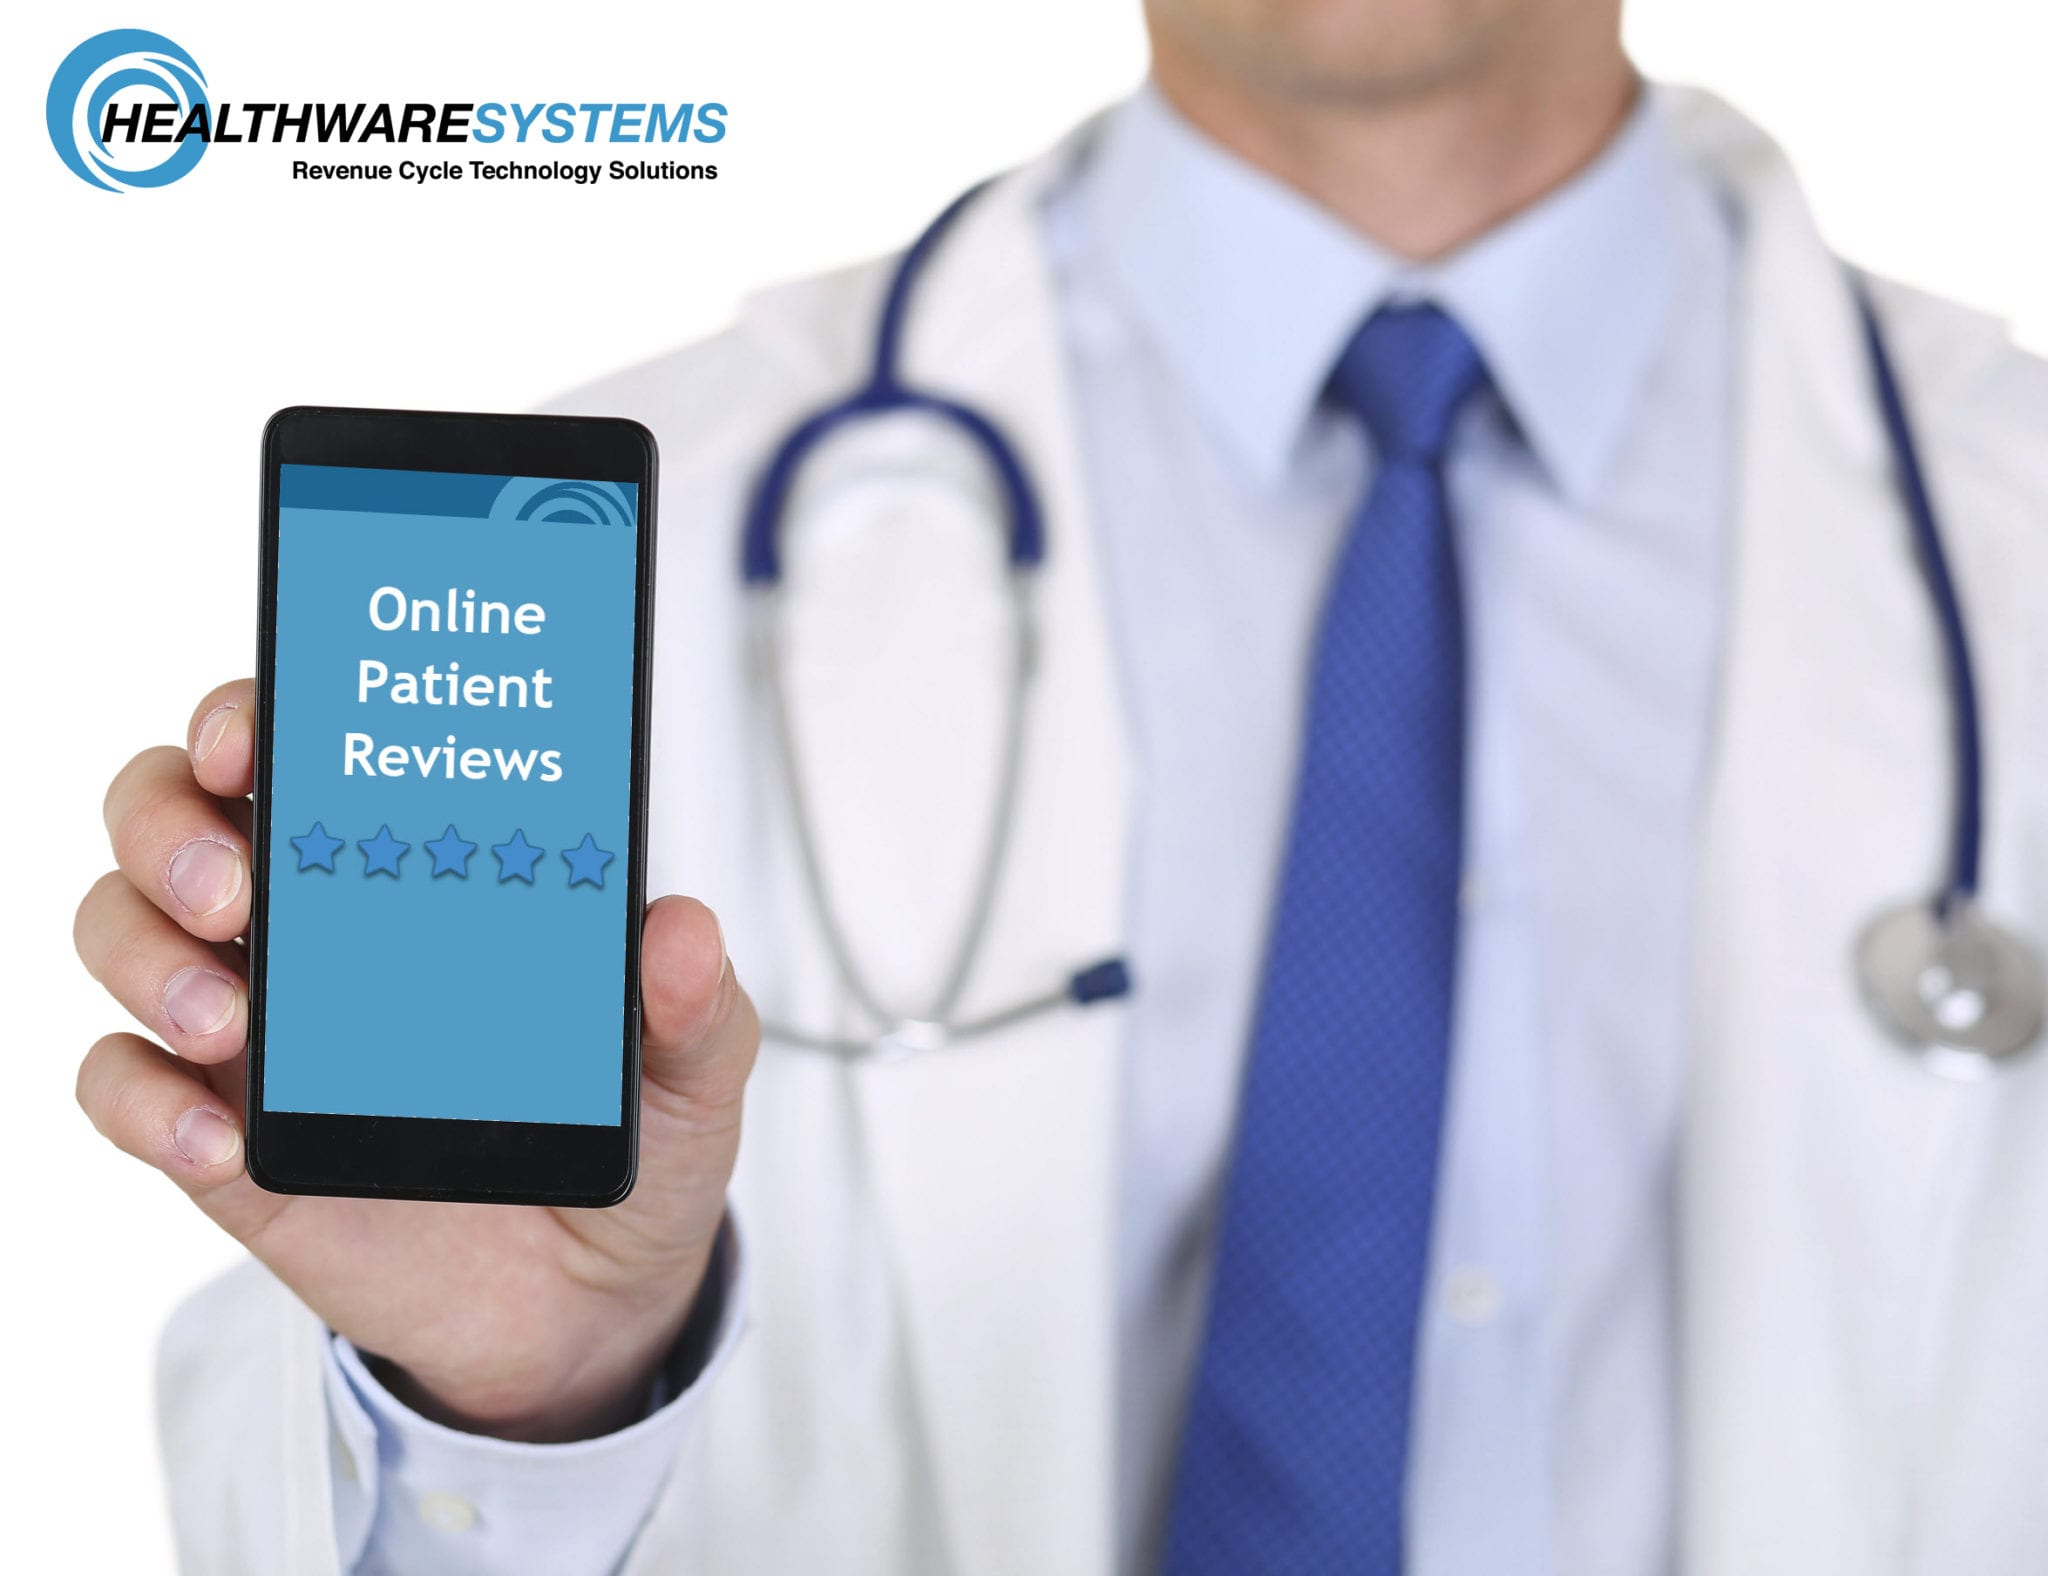 A doctor holds a smartphone showing online patient reviews.